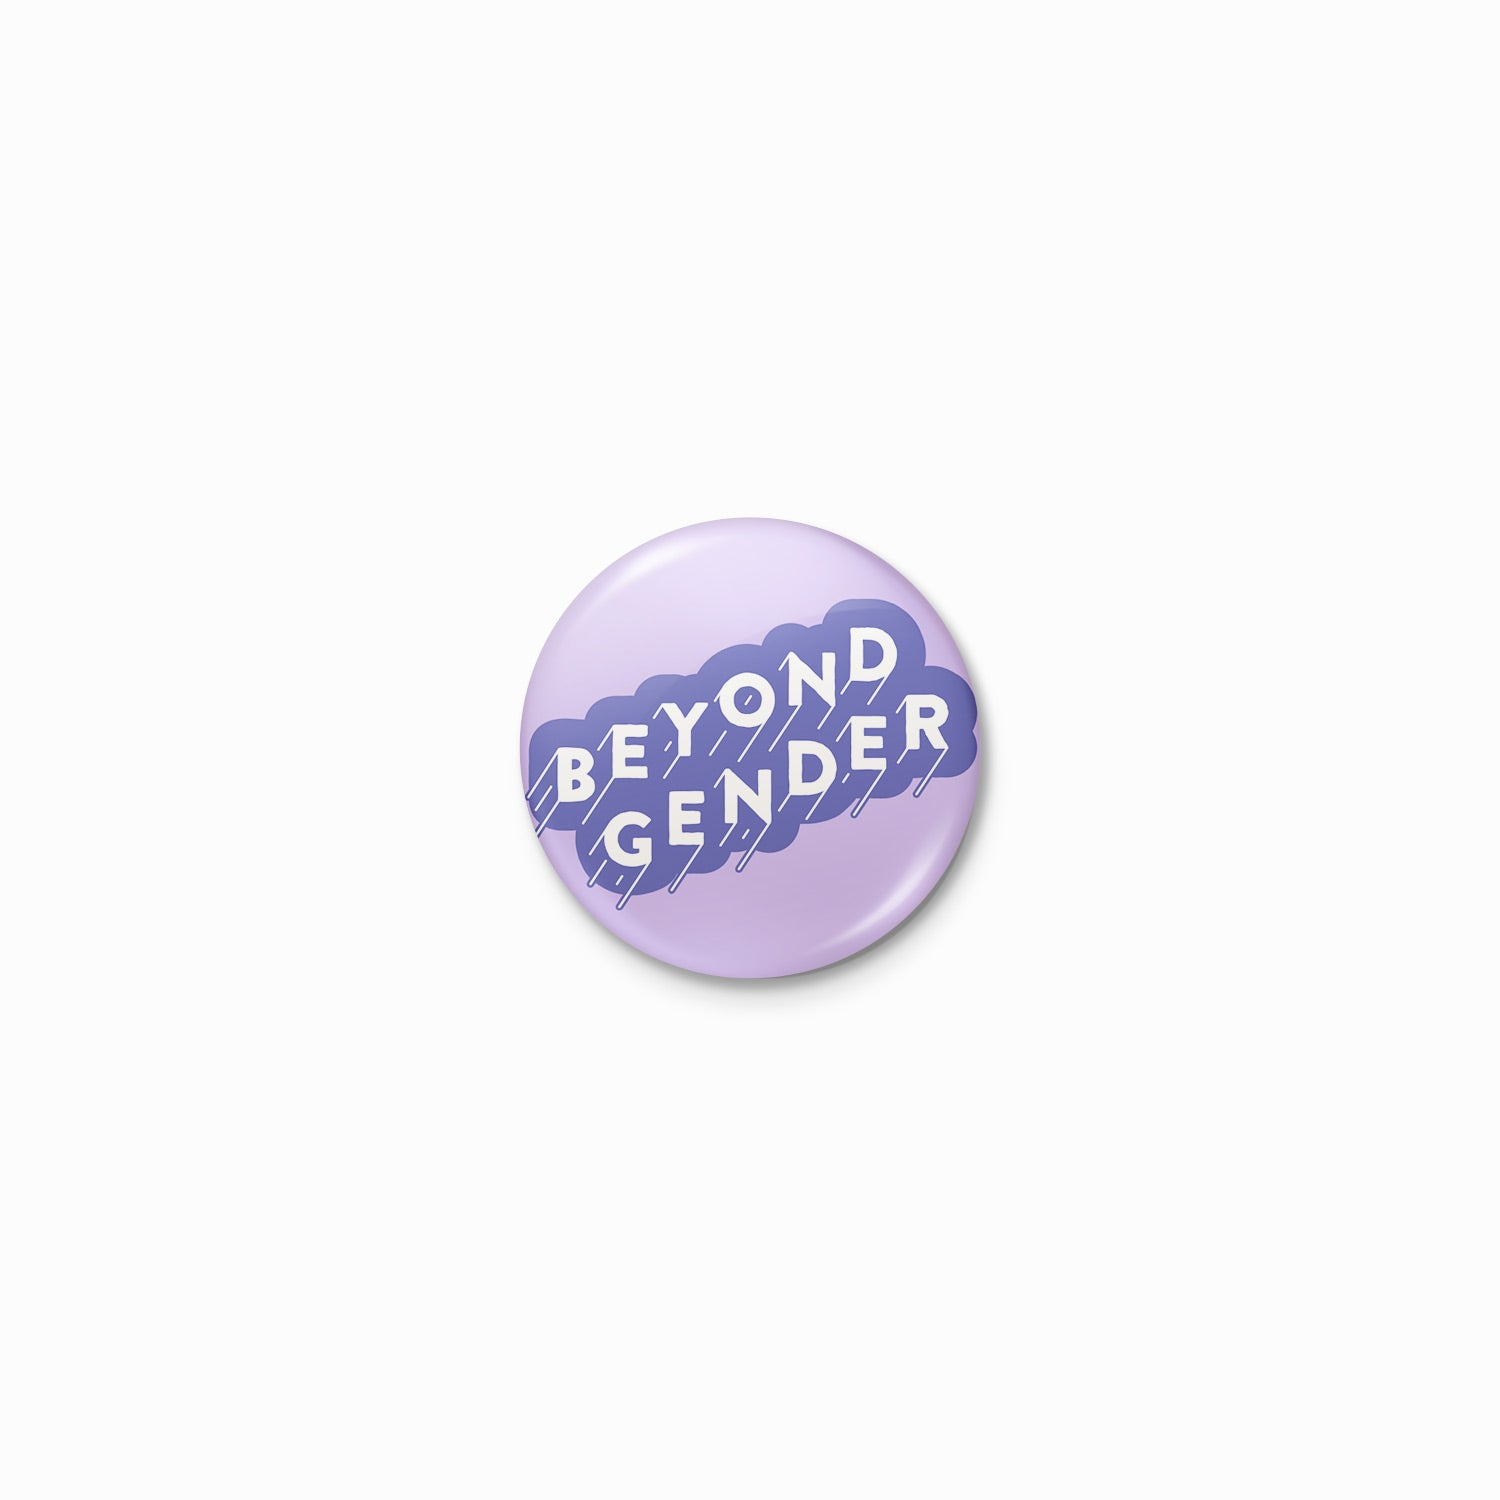 Beyond Gender Button